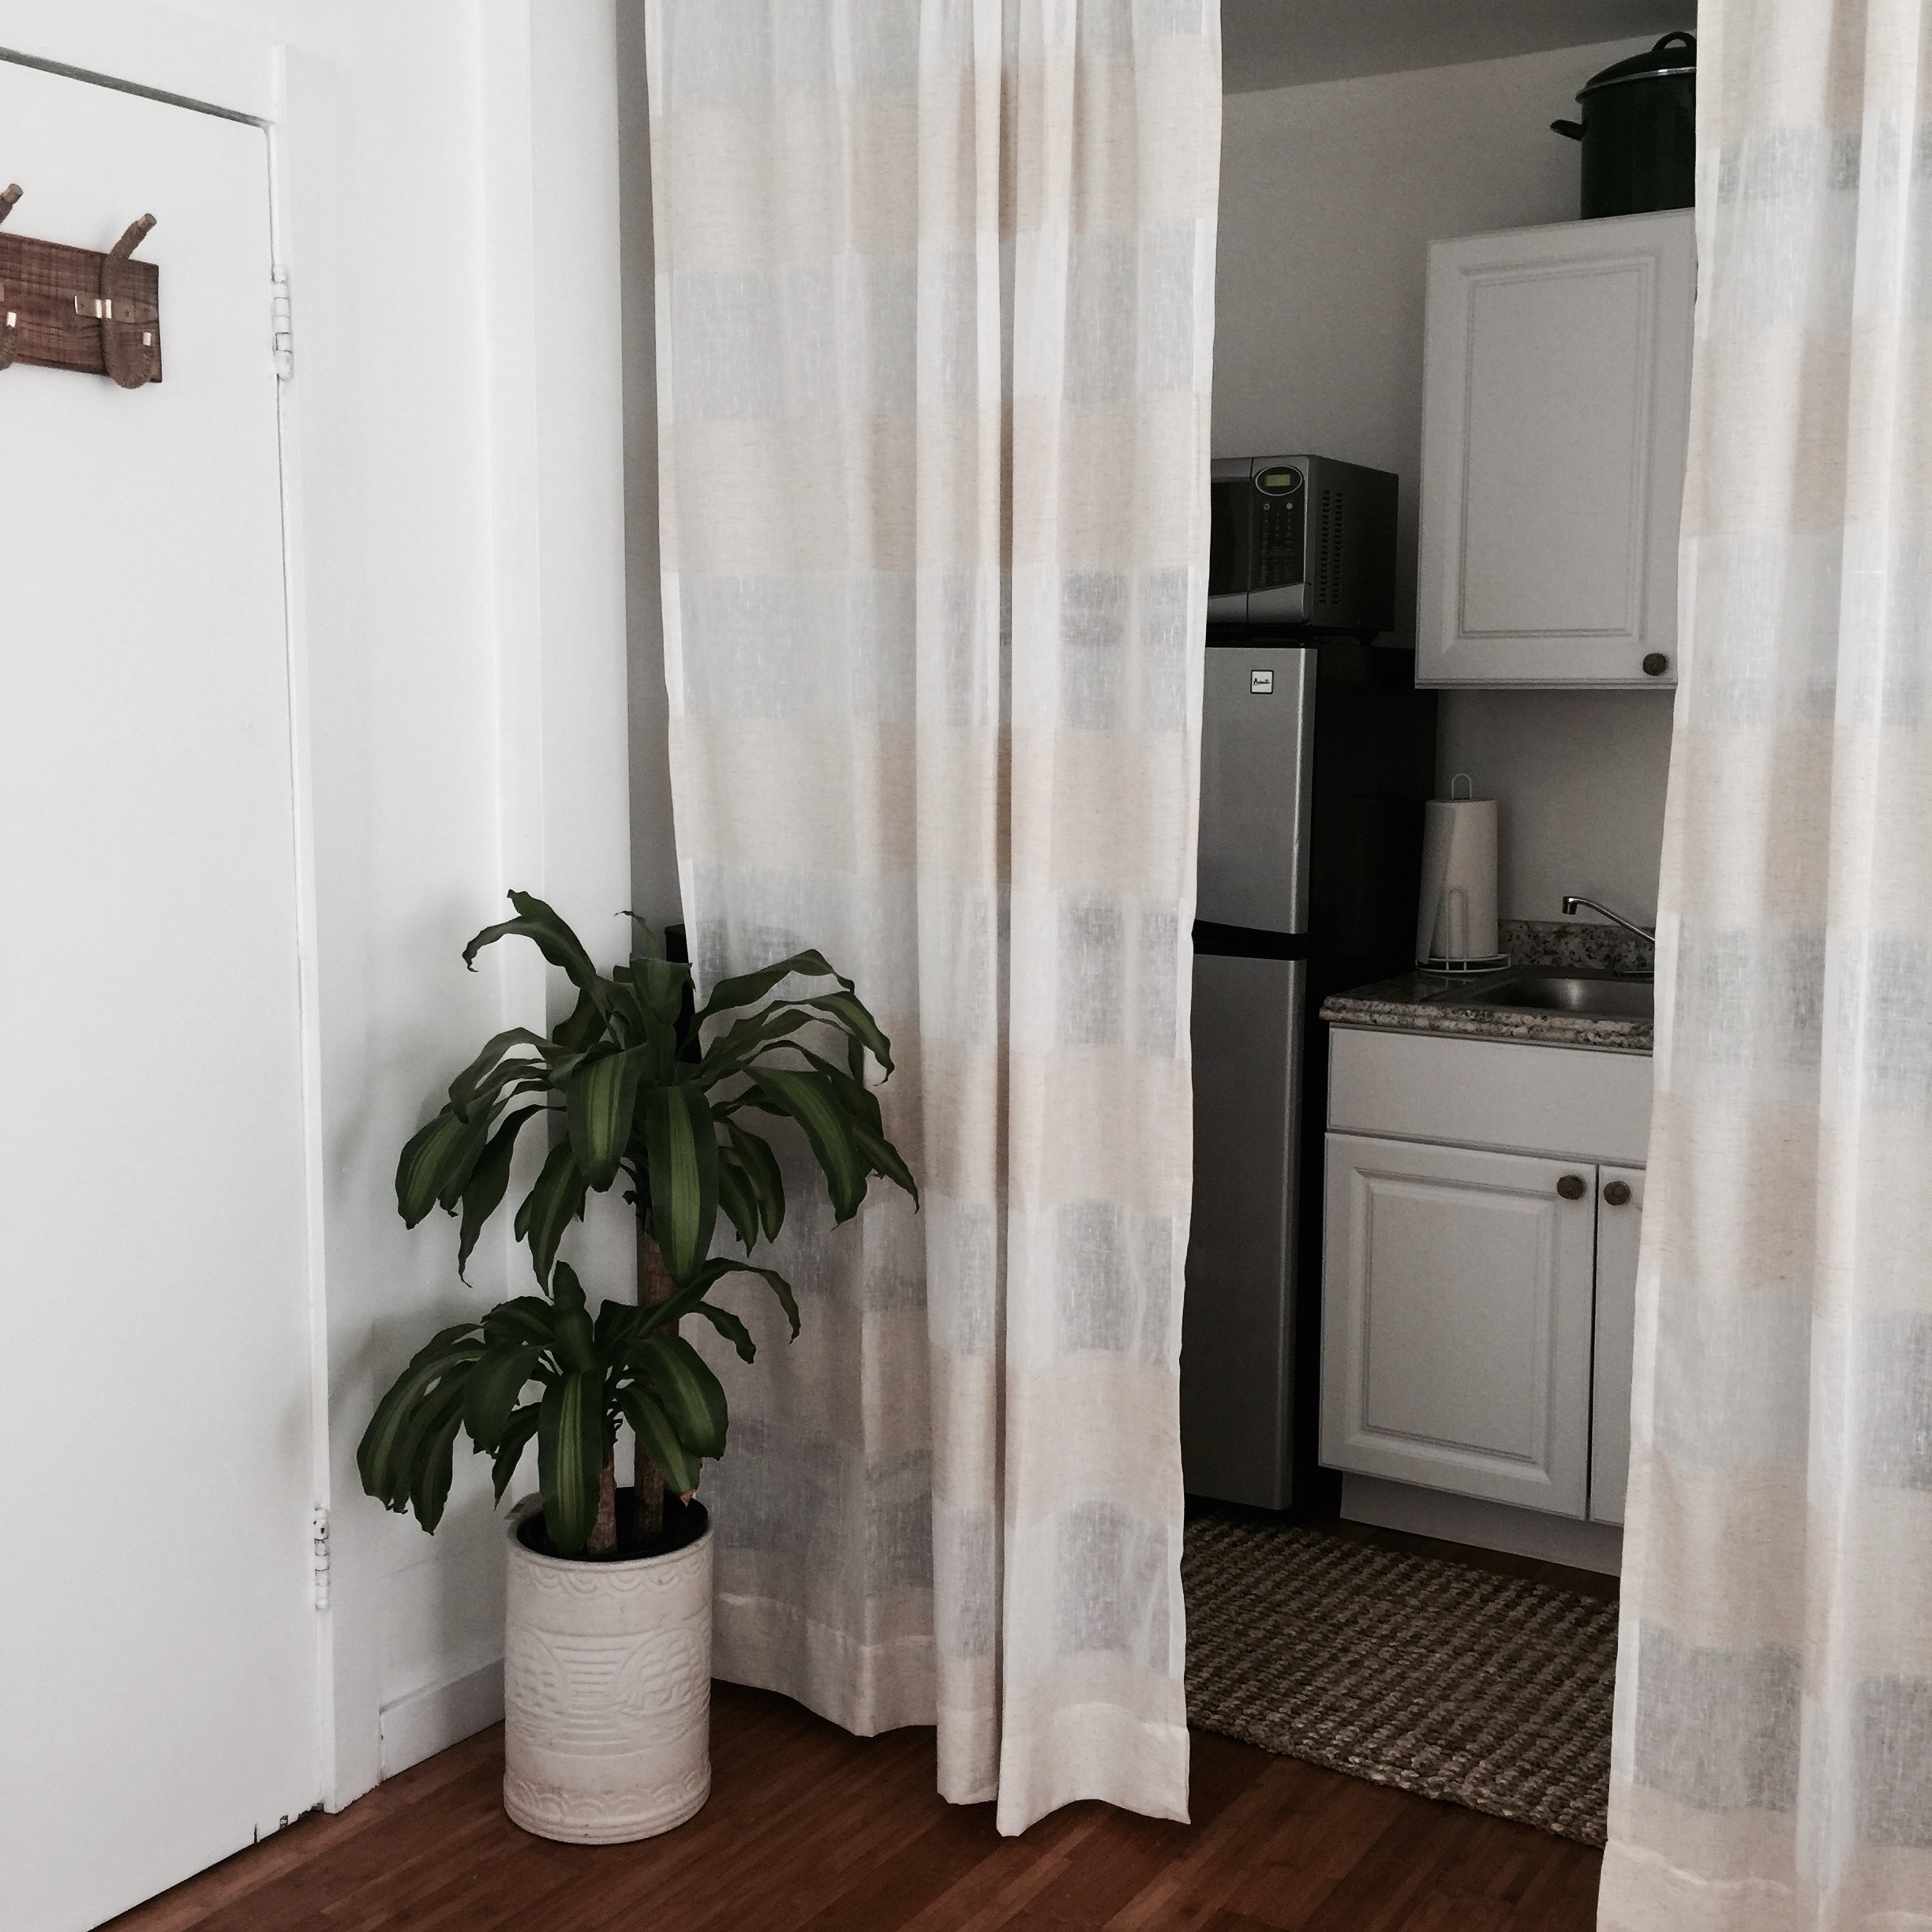 The kitchen is by the front door and there are curtains to cover the kitchen area if you like.